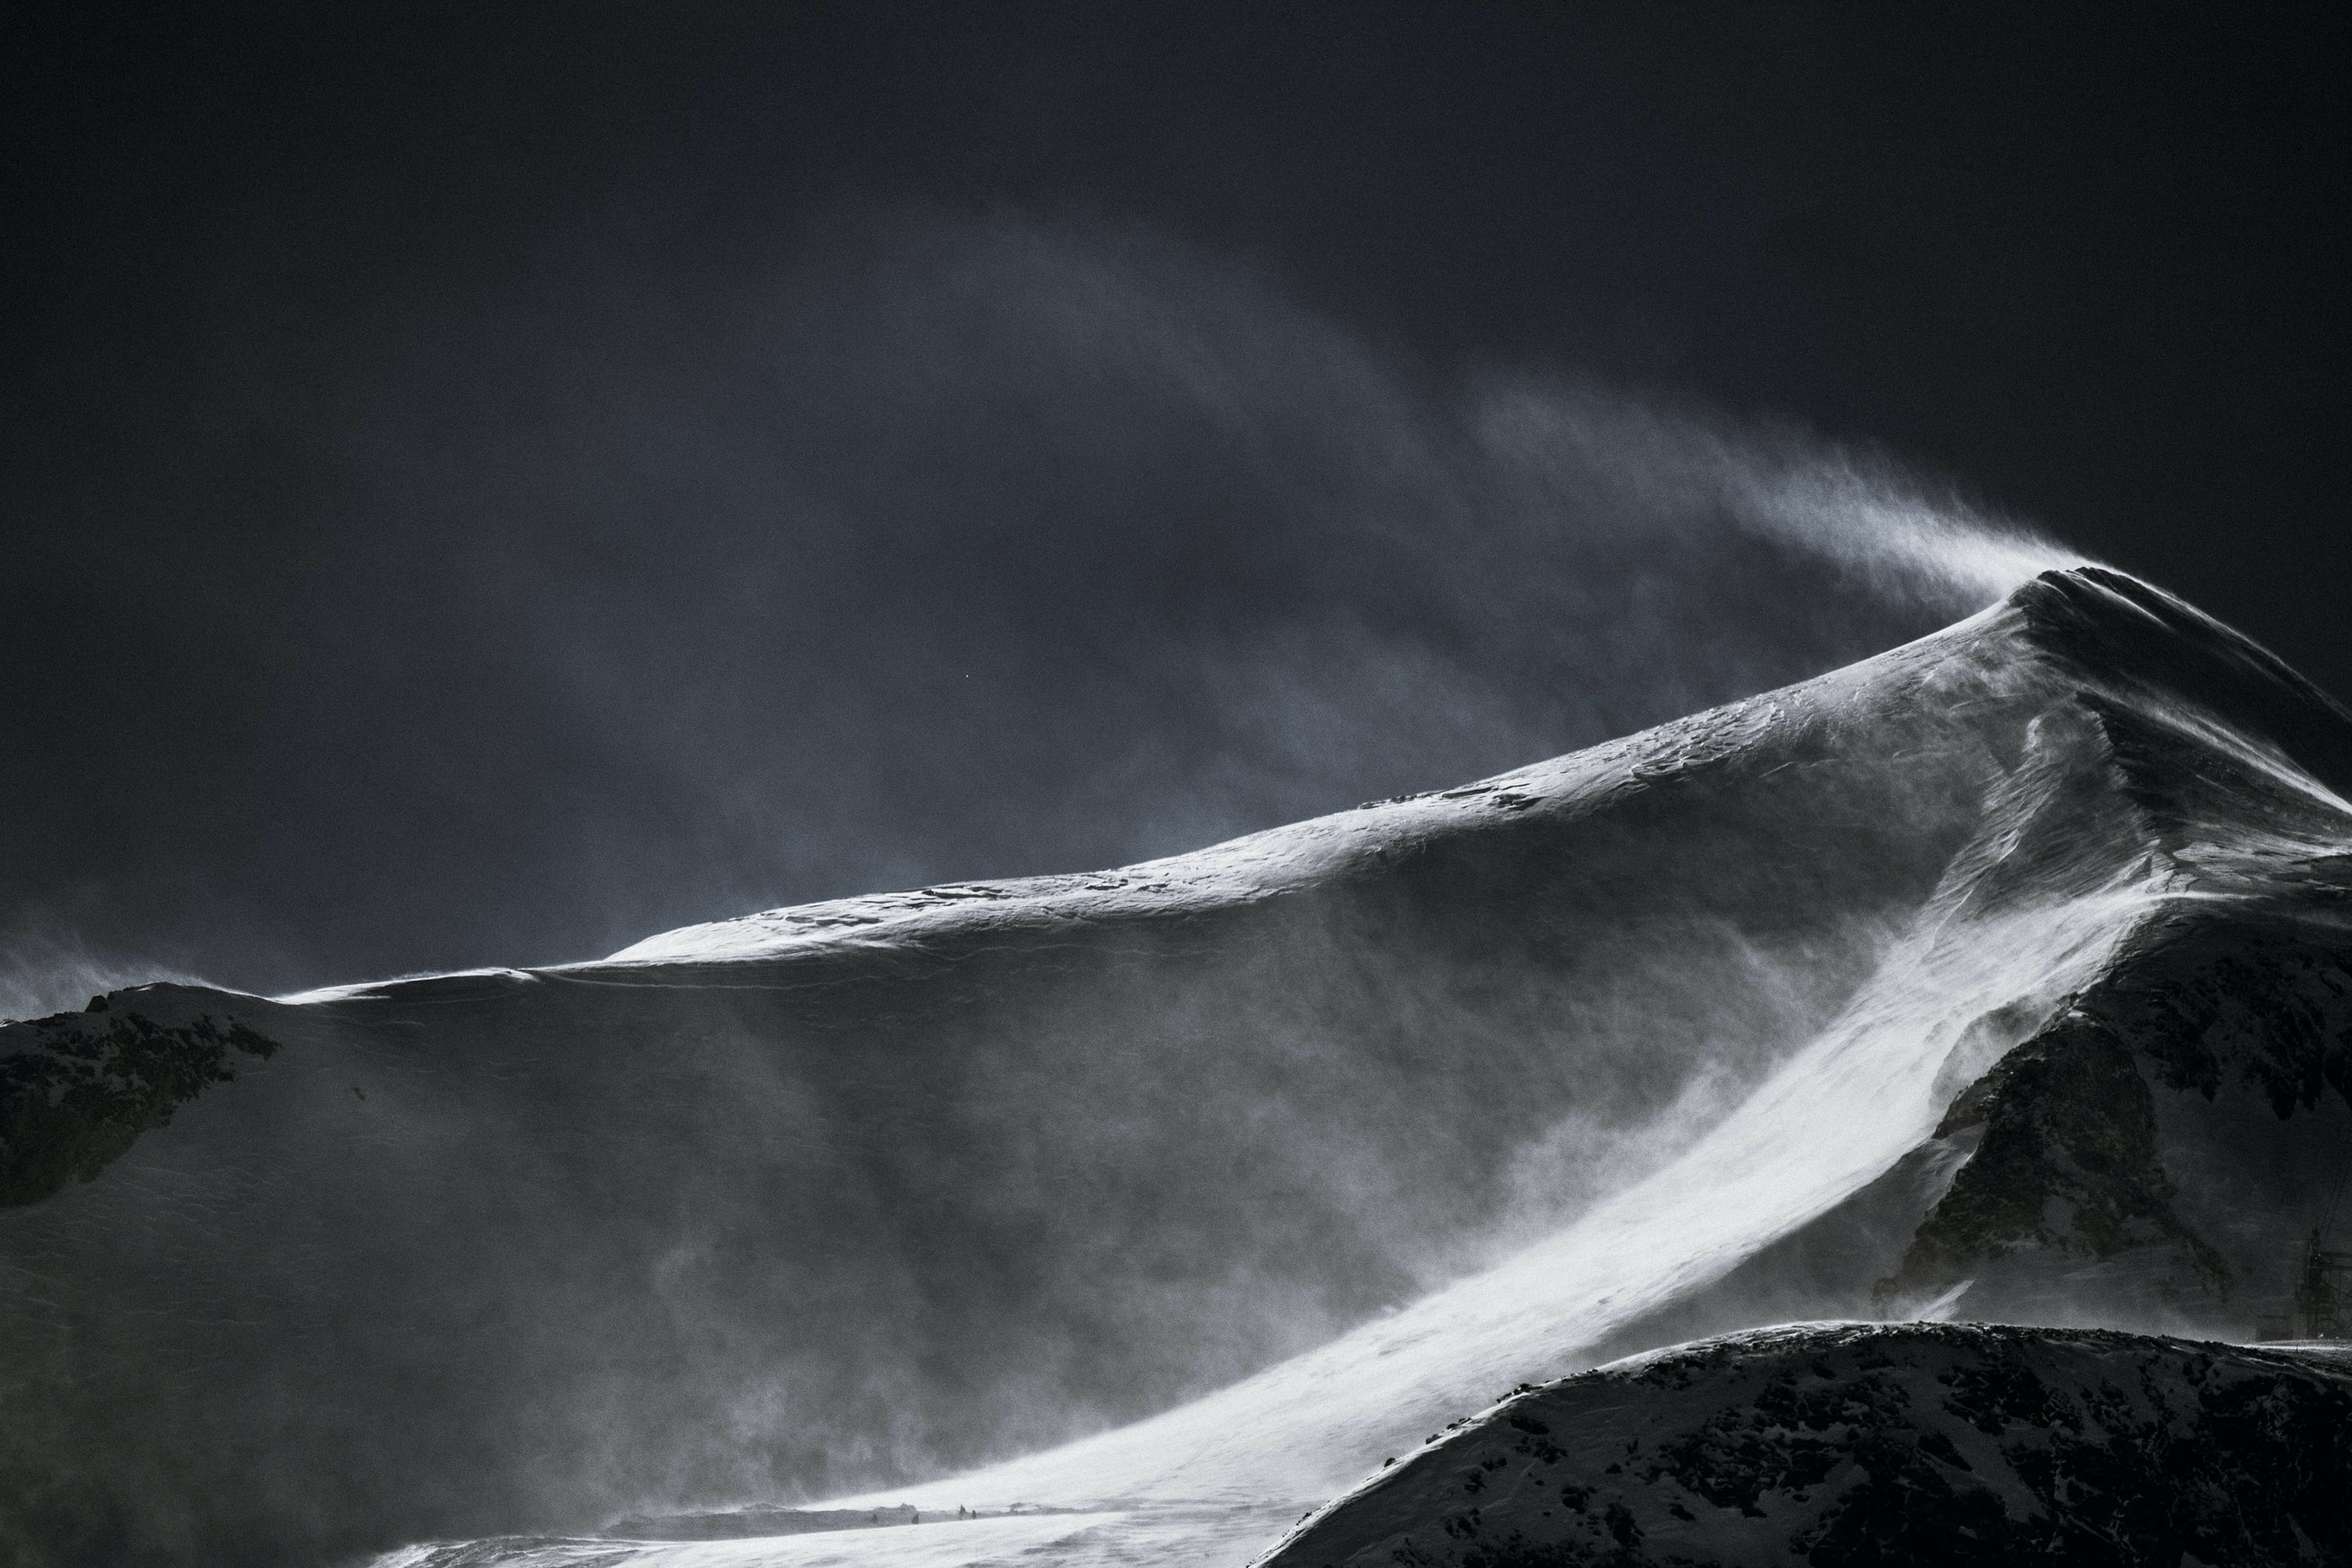 Black and white drone shot of a mountain peak covered in snow